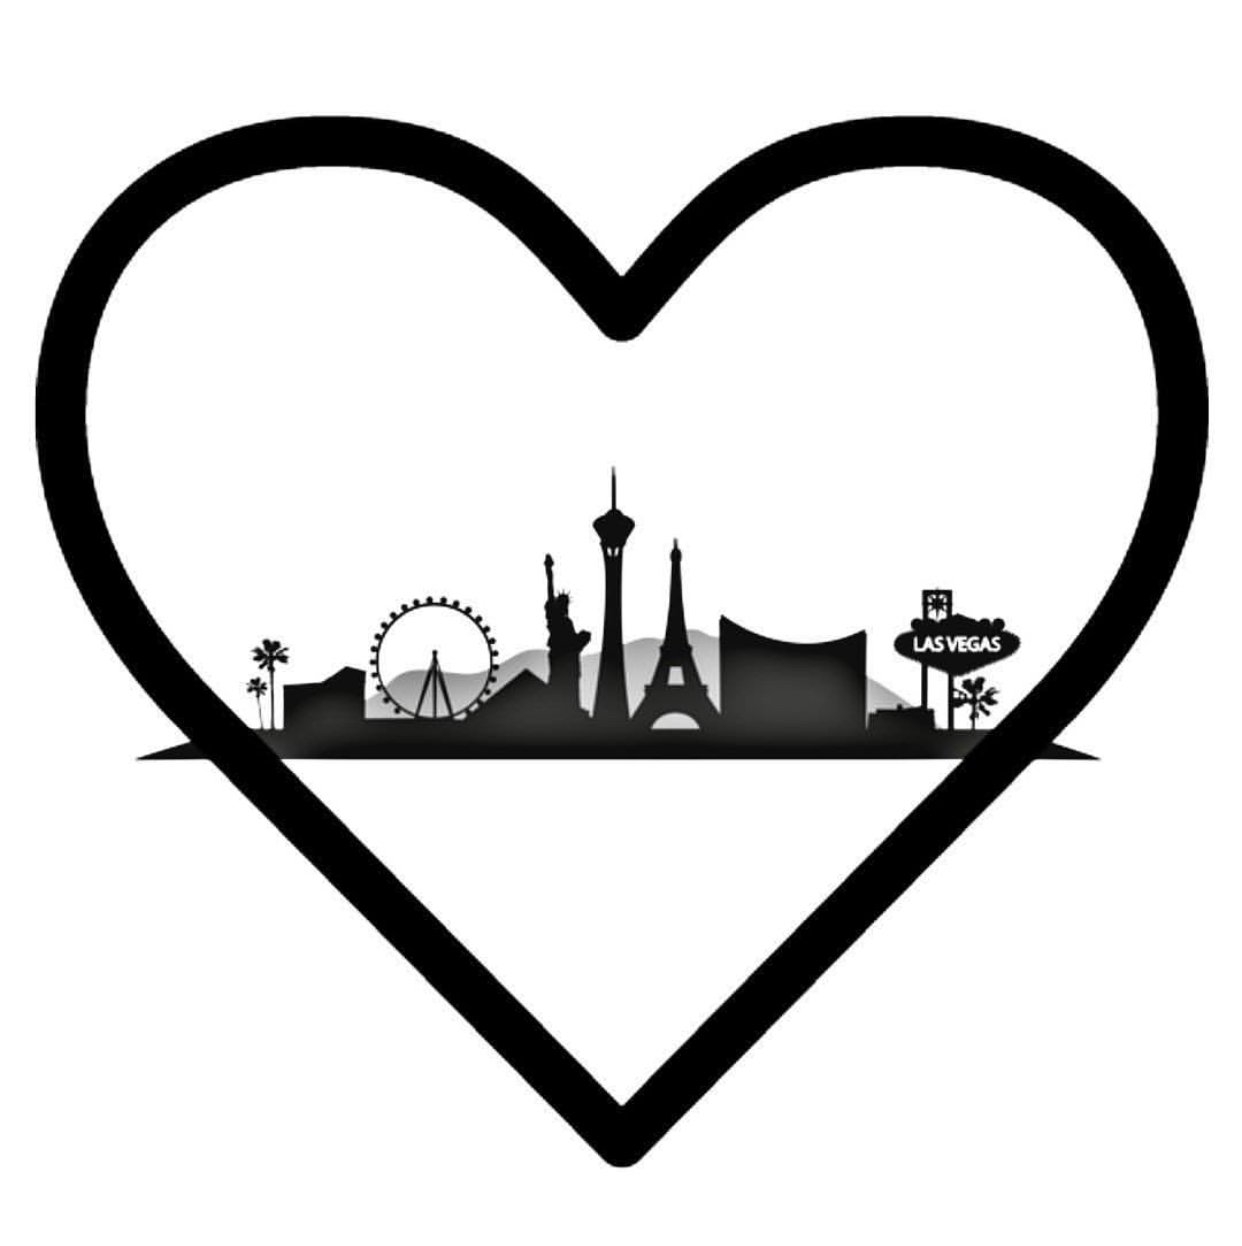 Our hearts ache for you Las Vegas, and our thoughts & prayers are with the victims and their families ♥️ https://t.co/uEqMS9wVf1